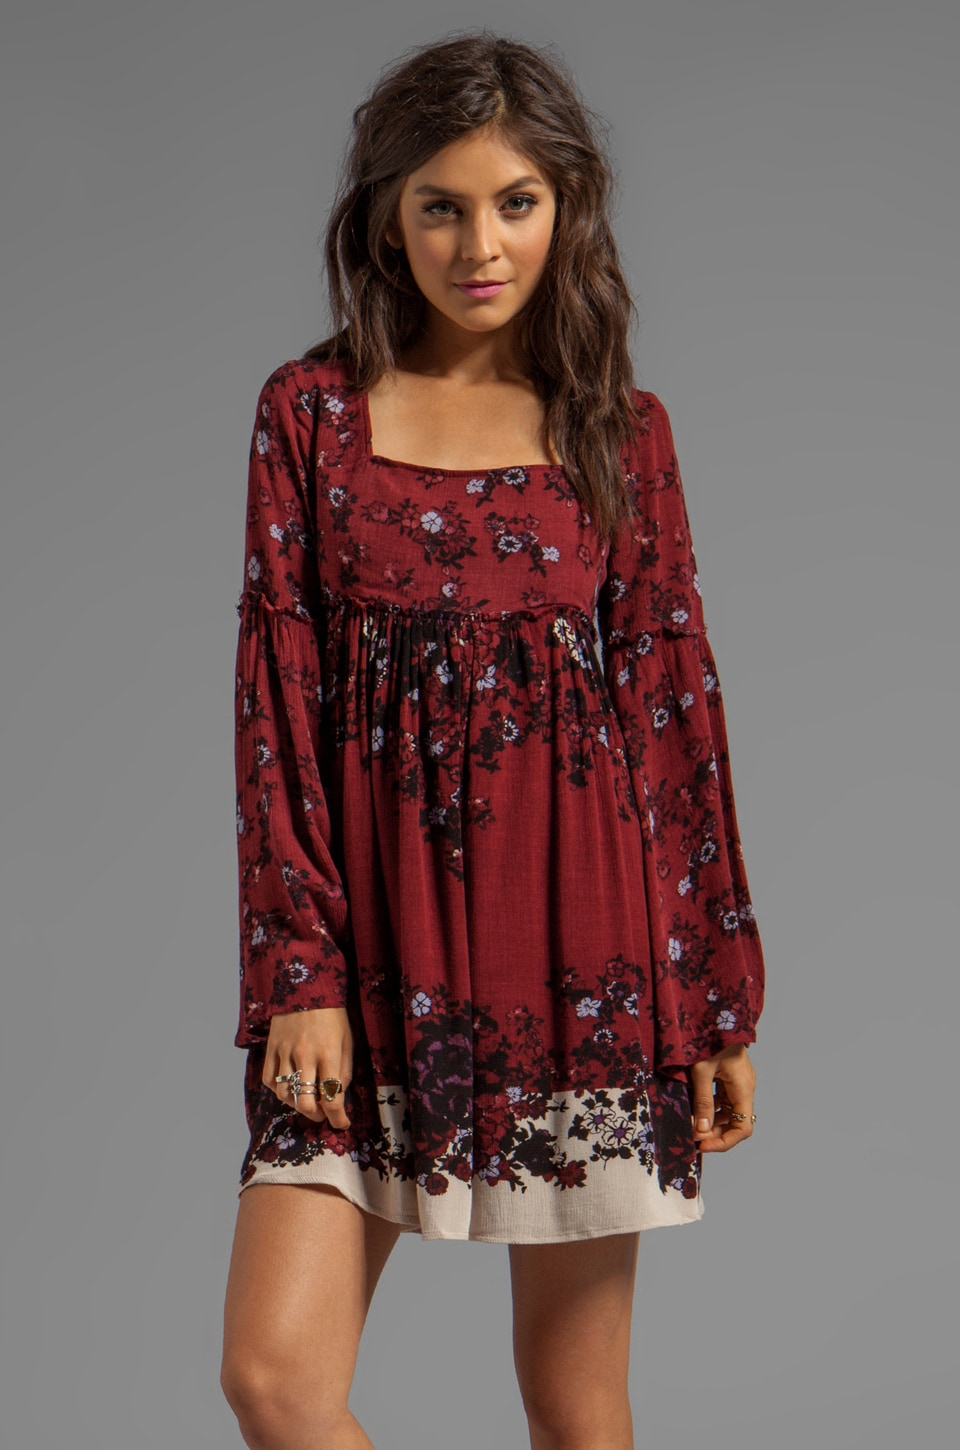 Free People Modern Chinoiserie Dress in Merlot Combo